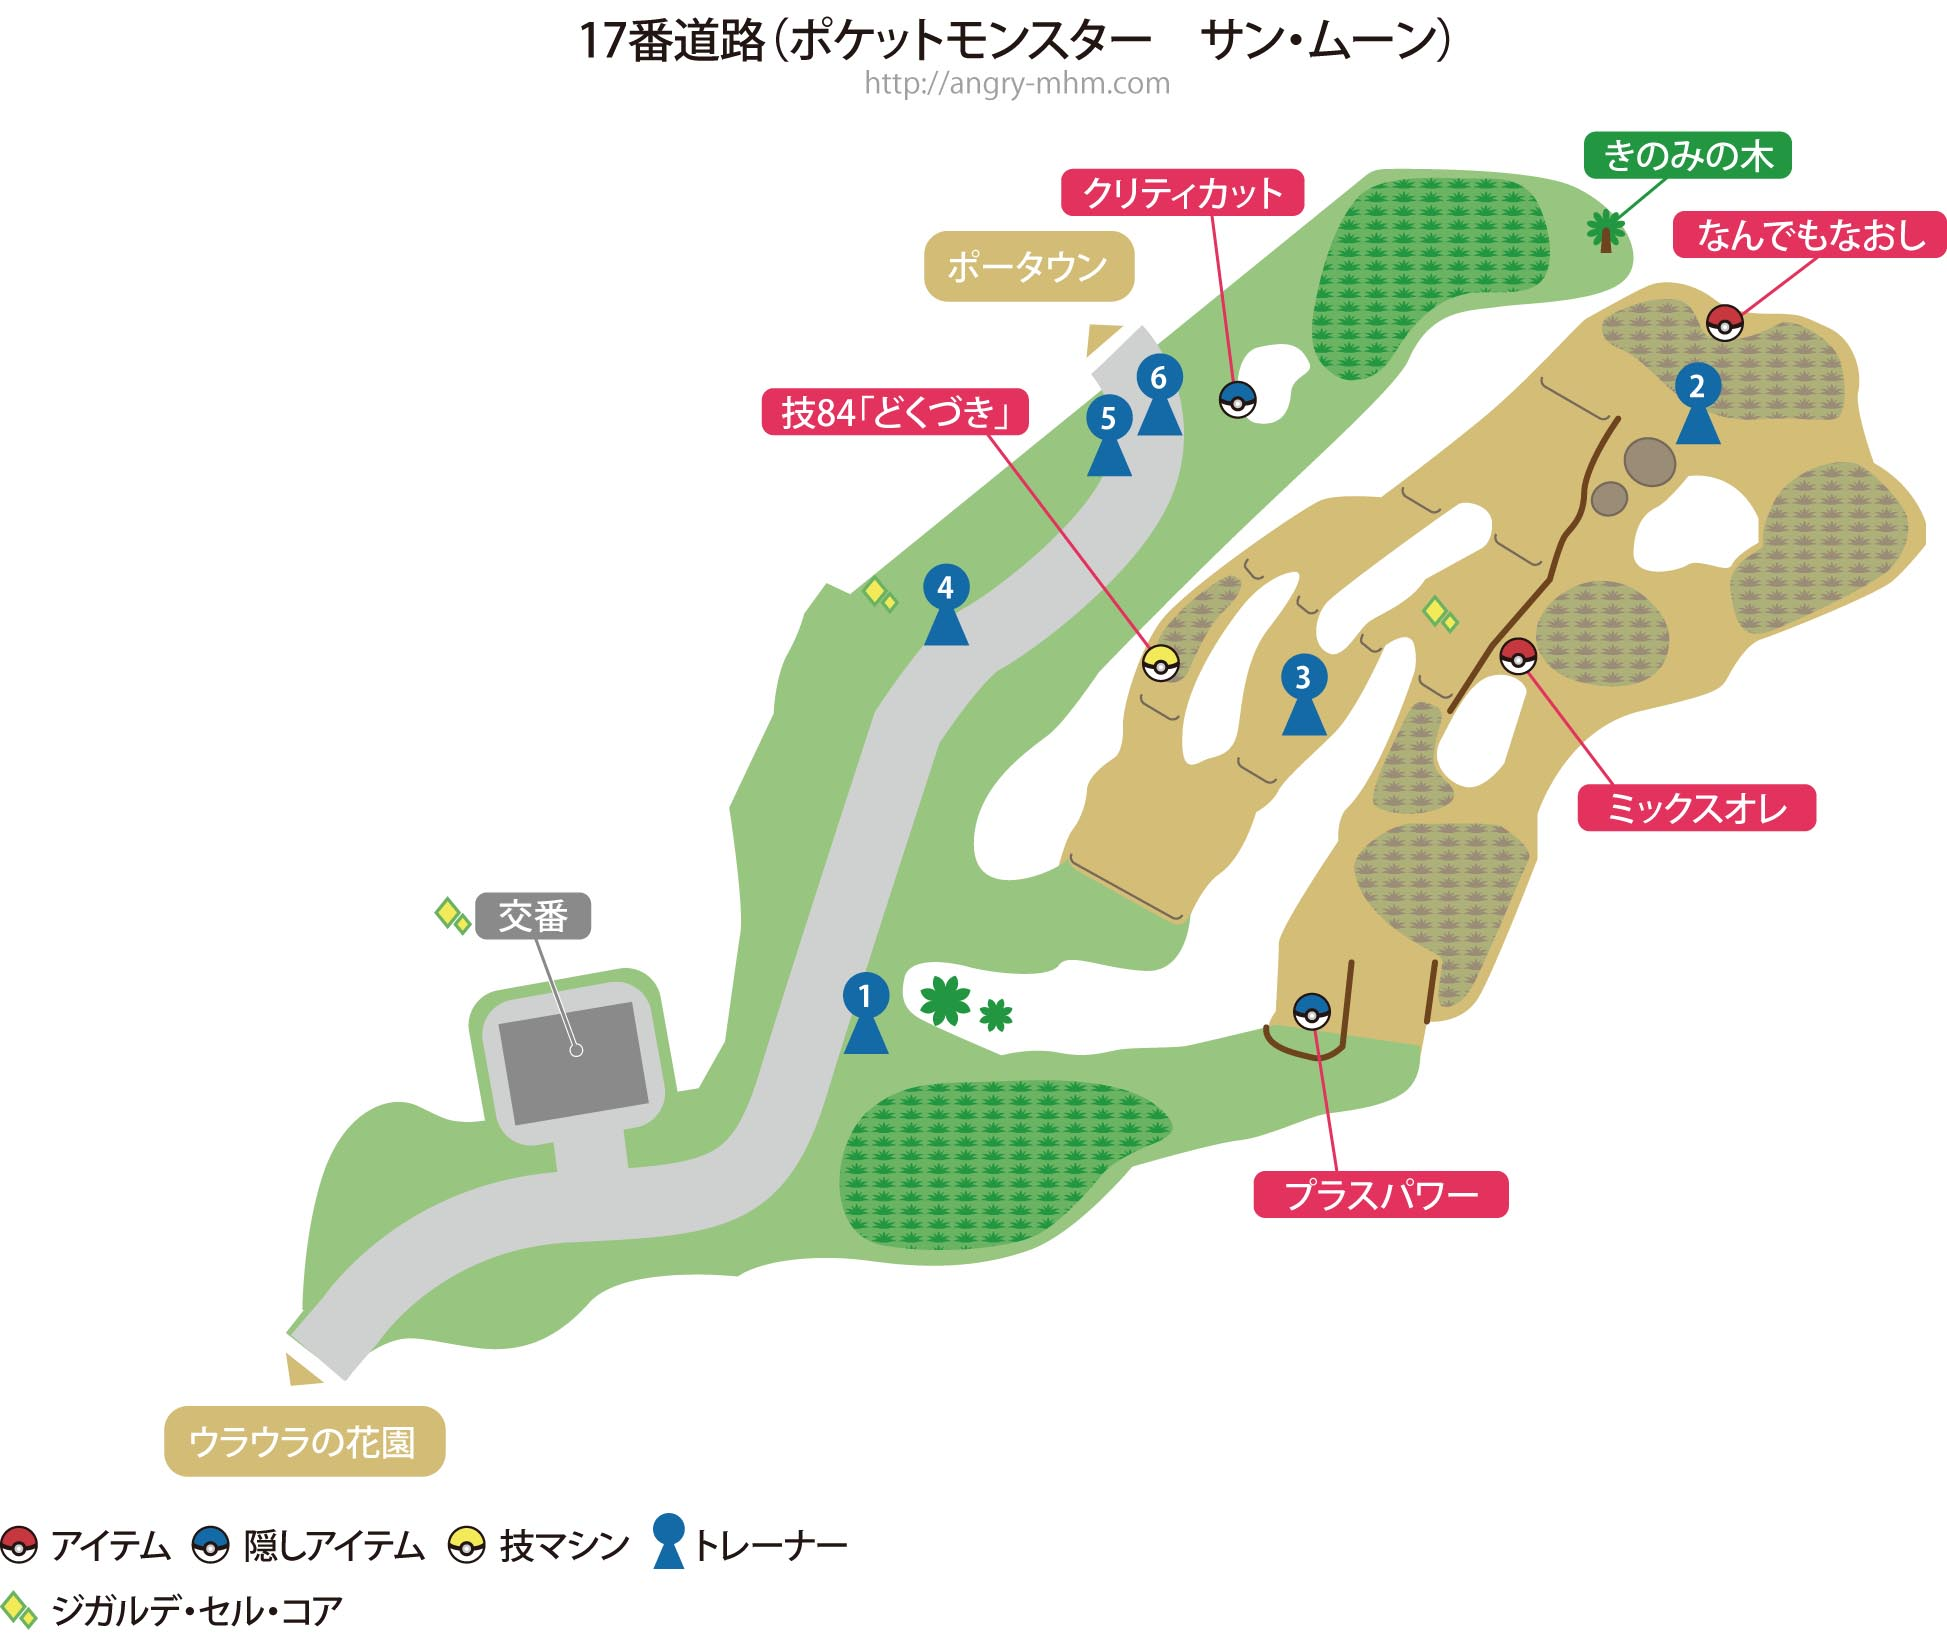 map-route-17